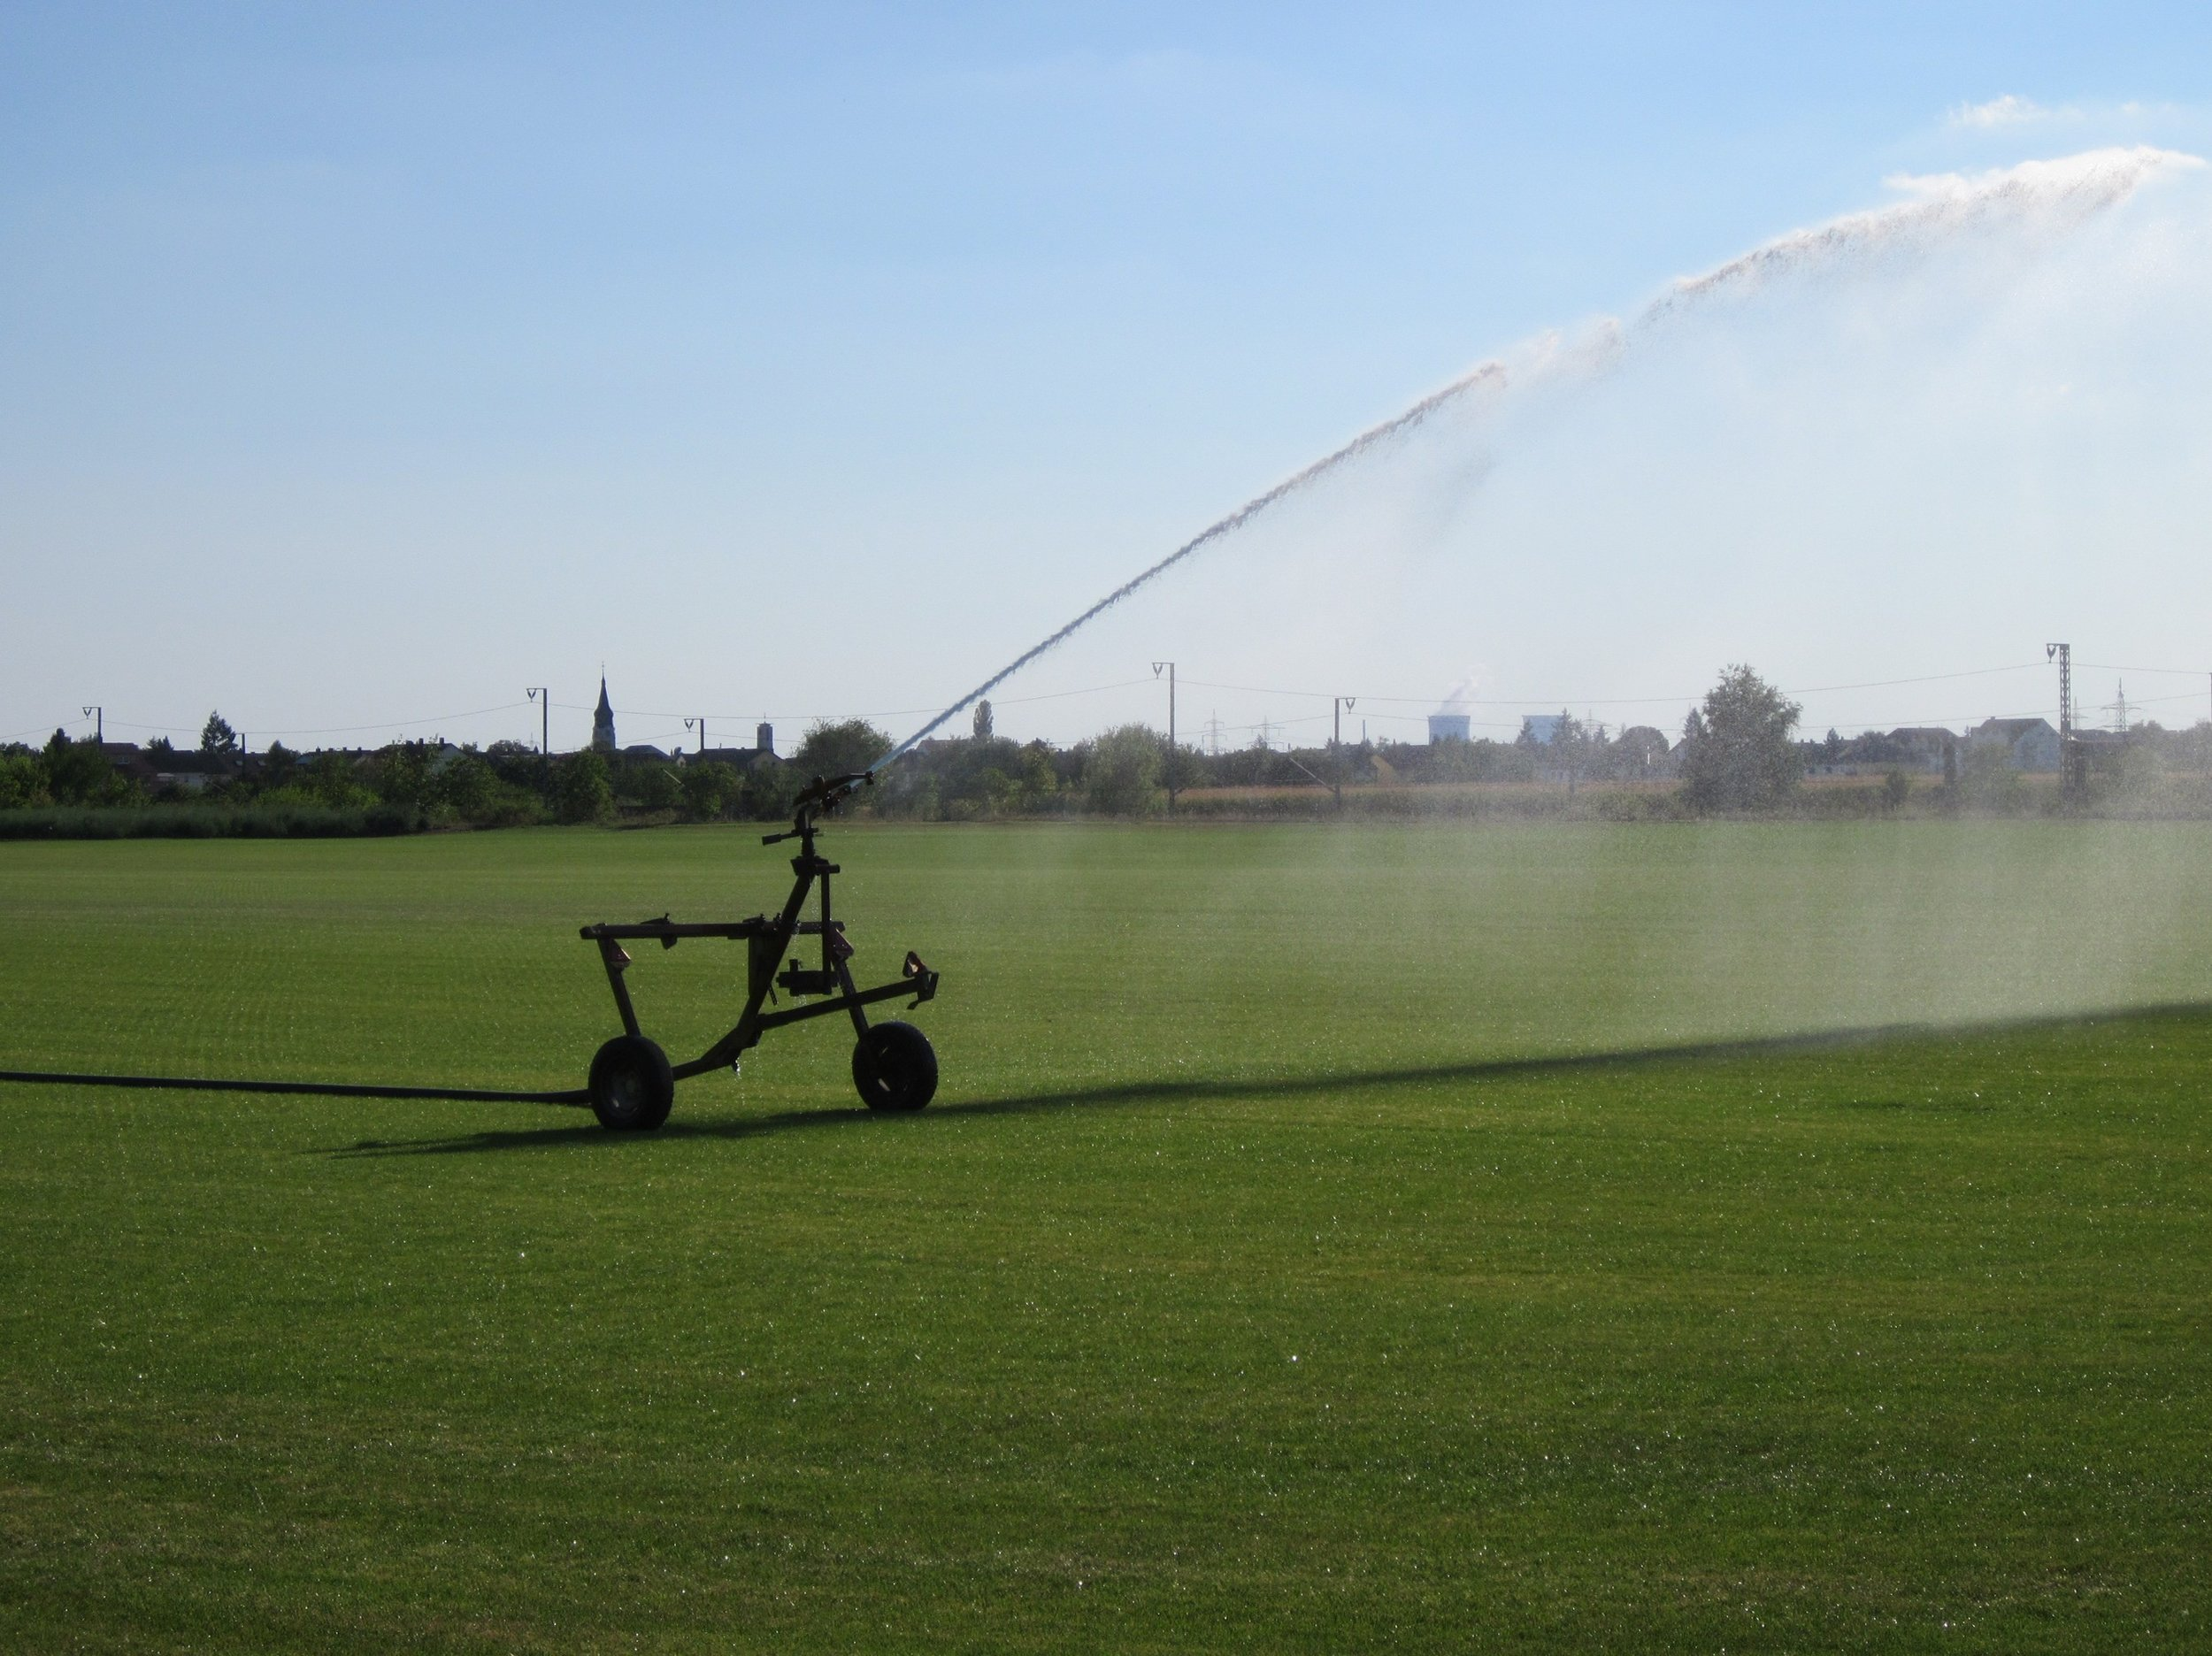 Quality sod comes from sod farms, which provide top quality grasses.